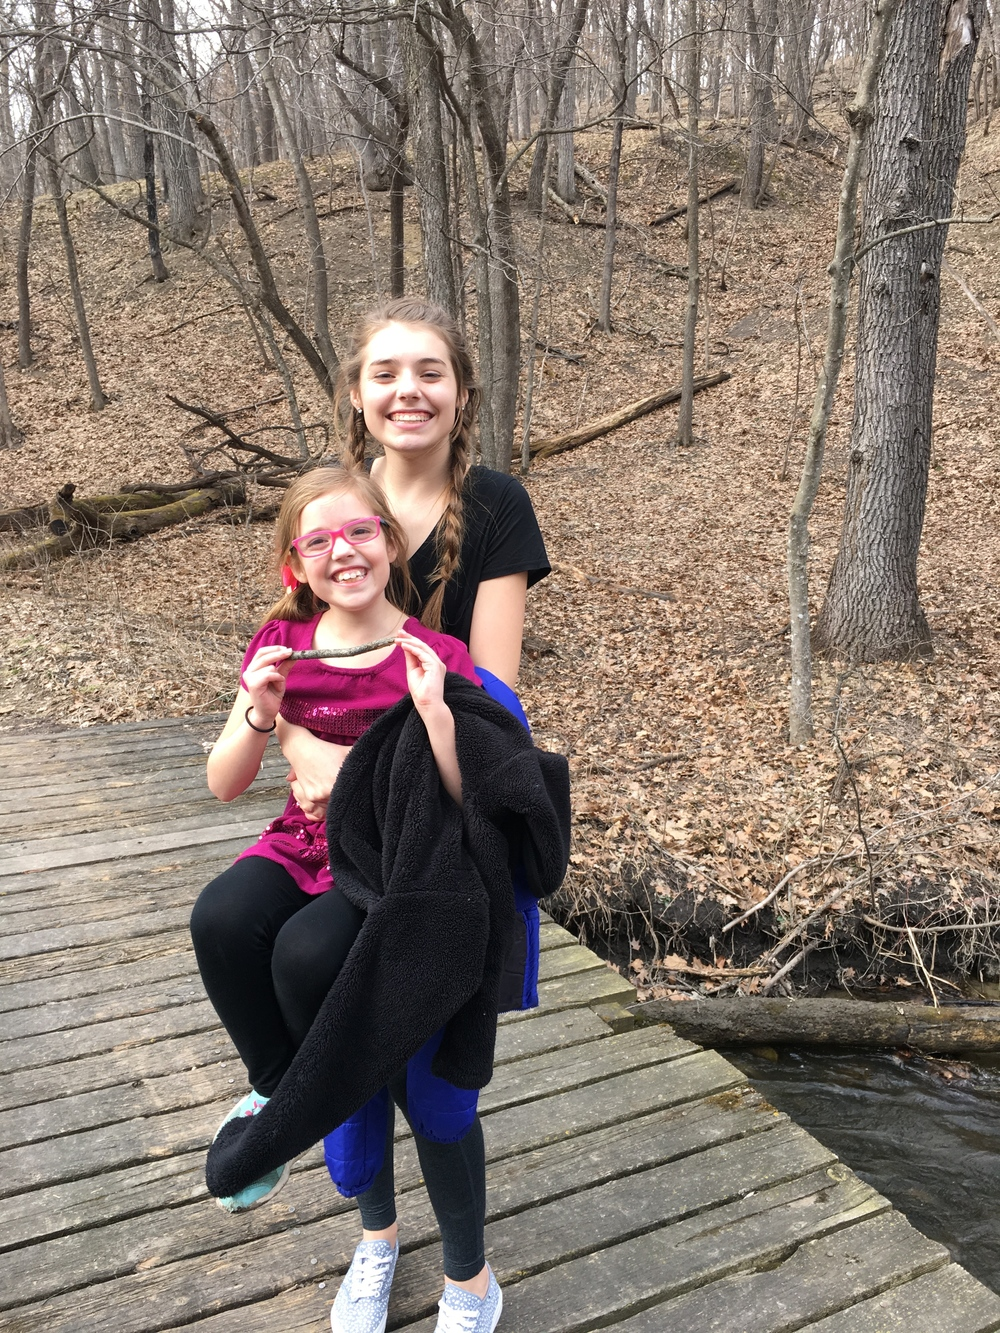 The Remedy for Screen Obsessed Kids? Getting out in nature!